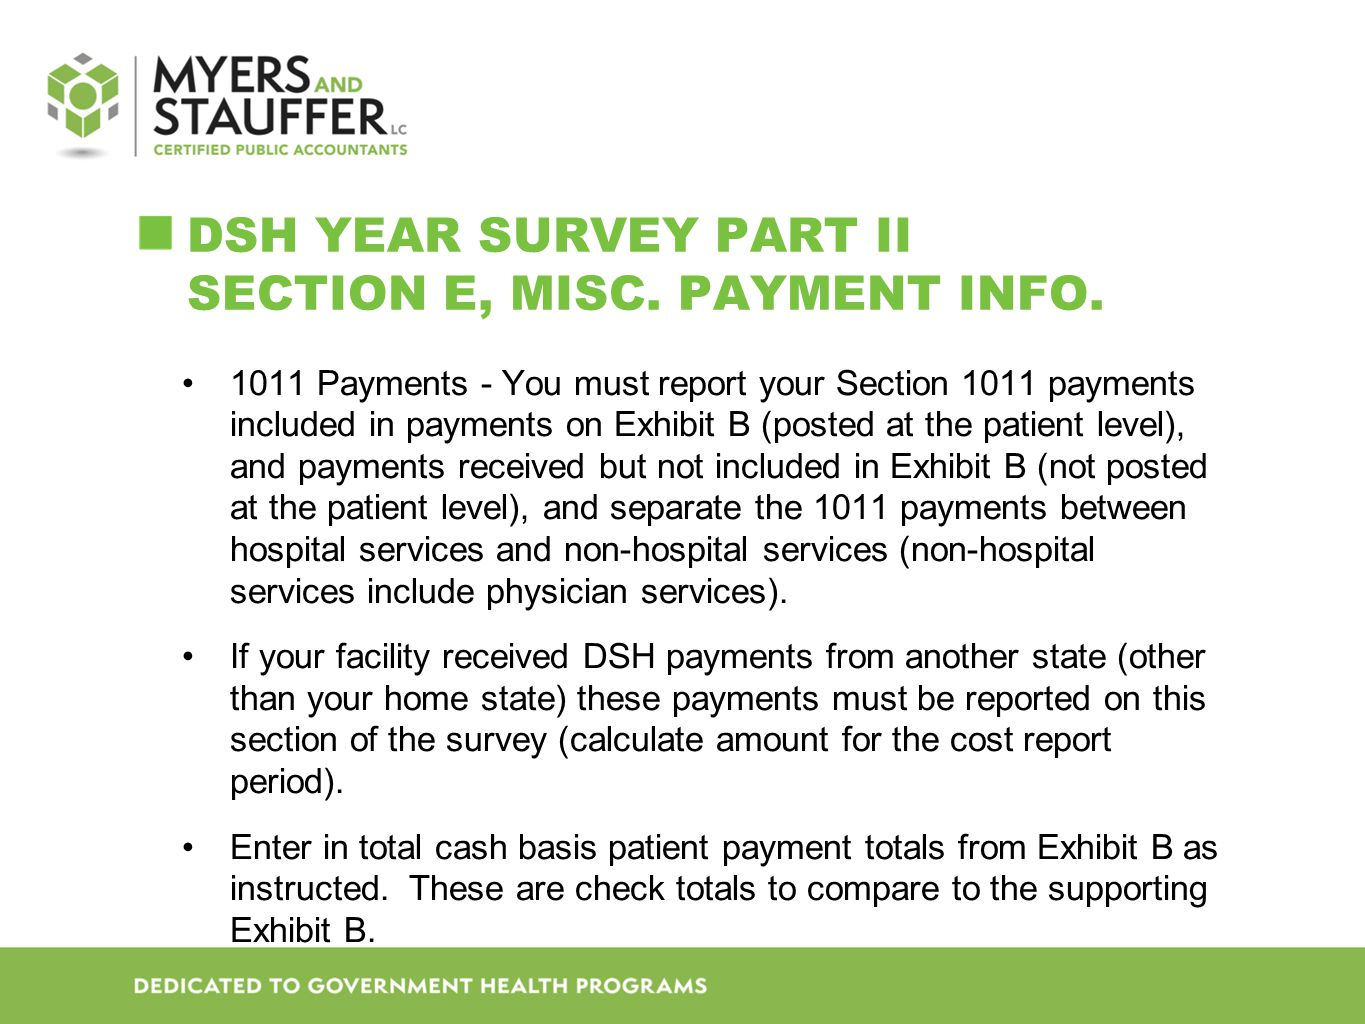 DSH Year SURVEY Part II Section E, Misc. Payment Info.